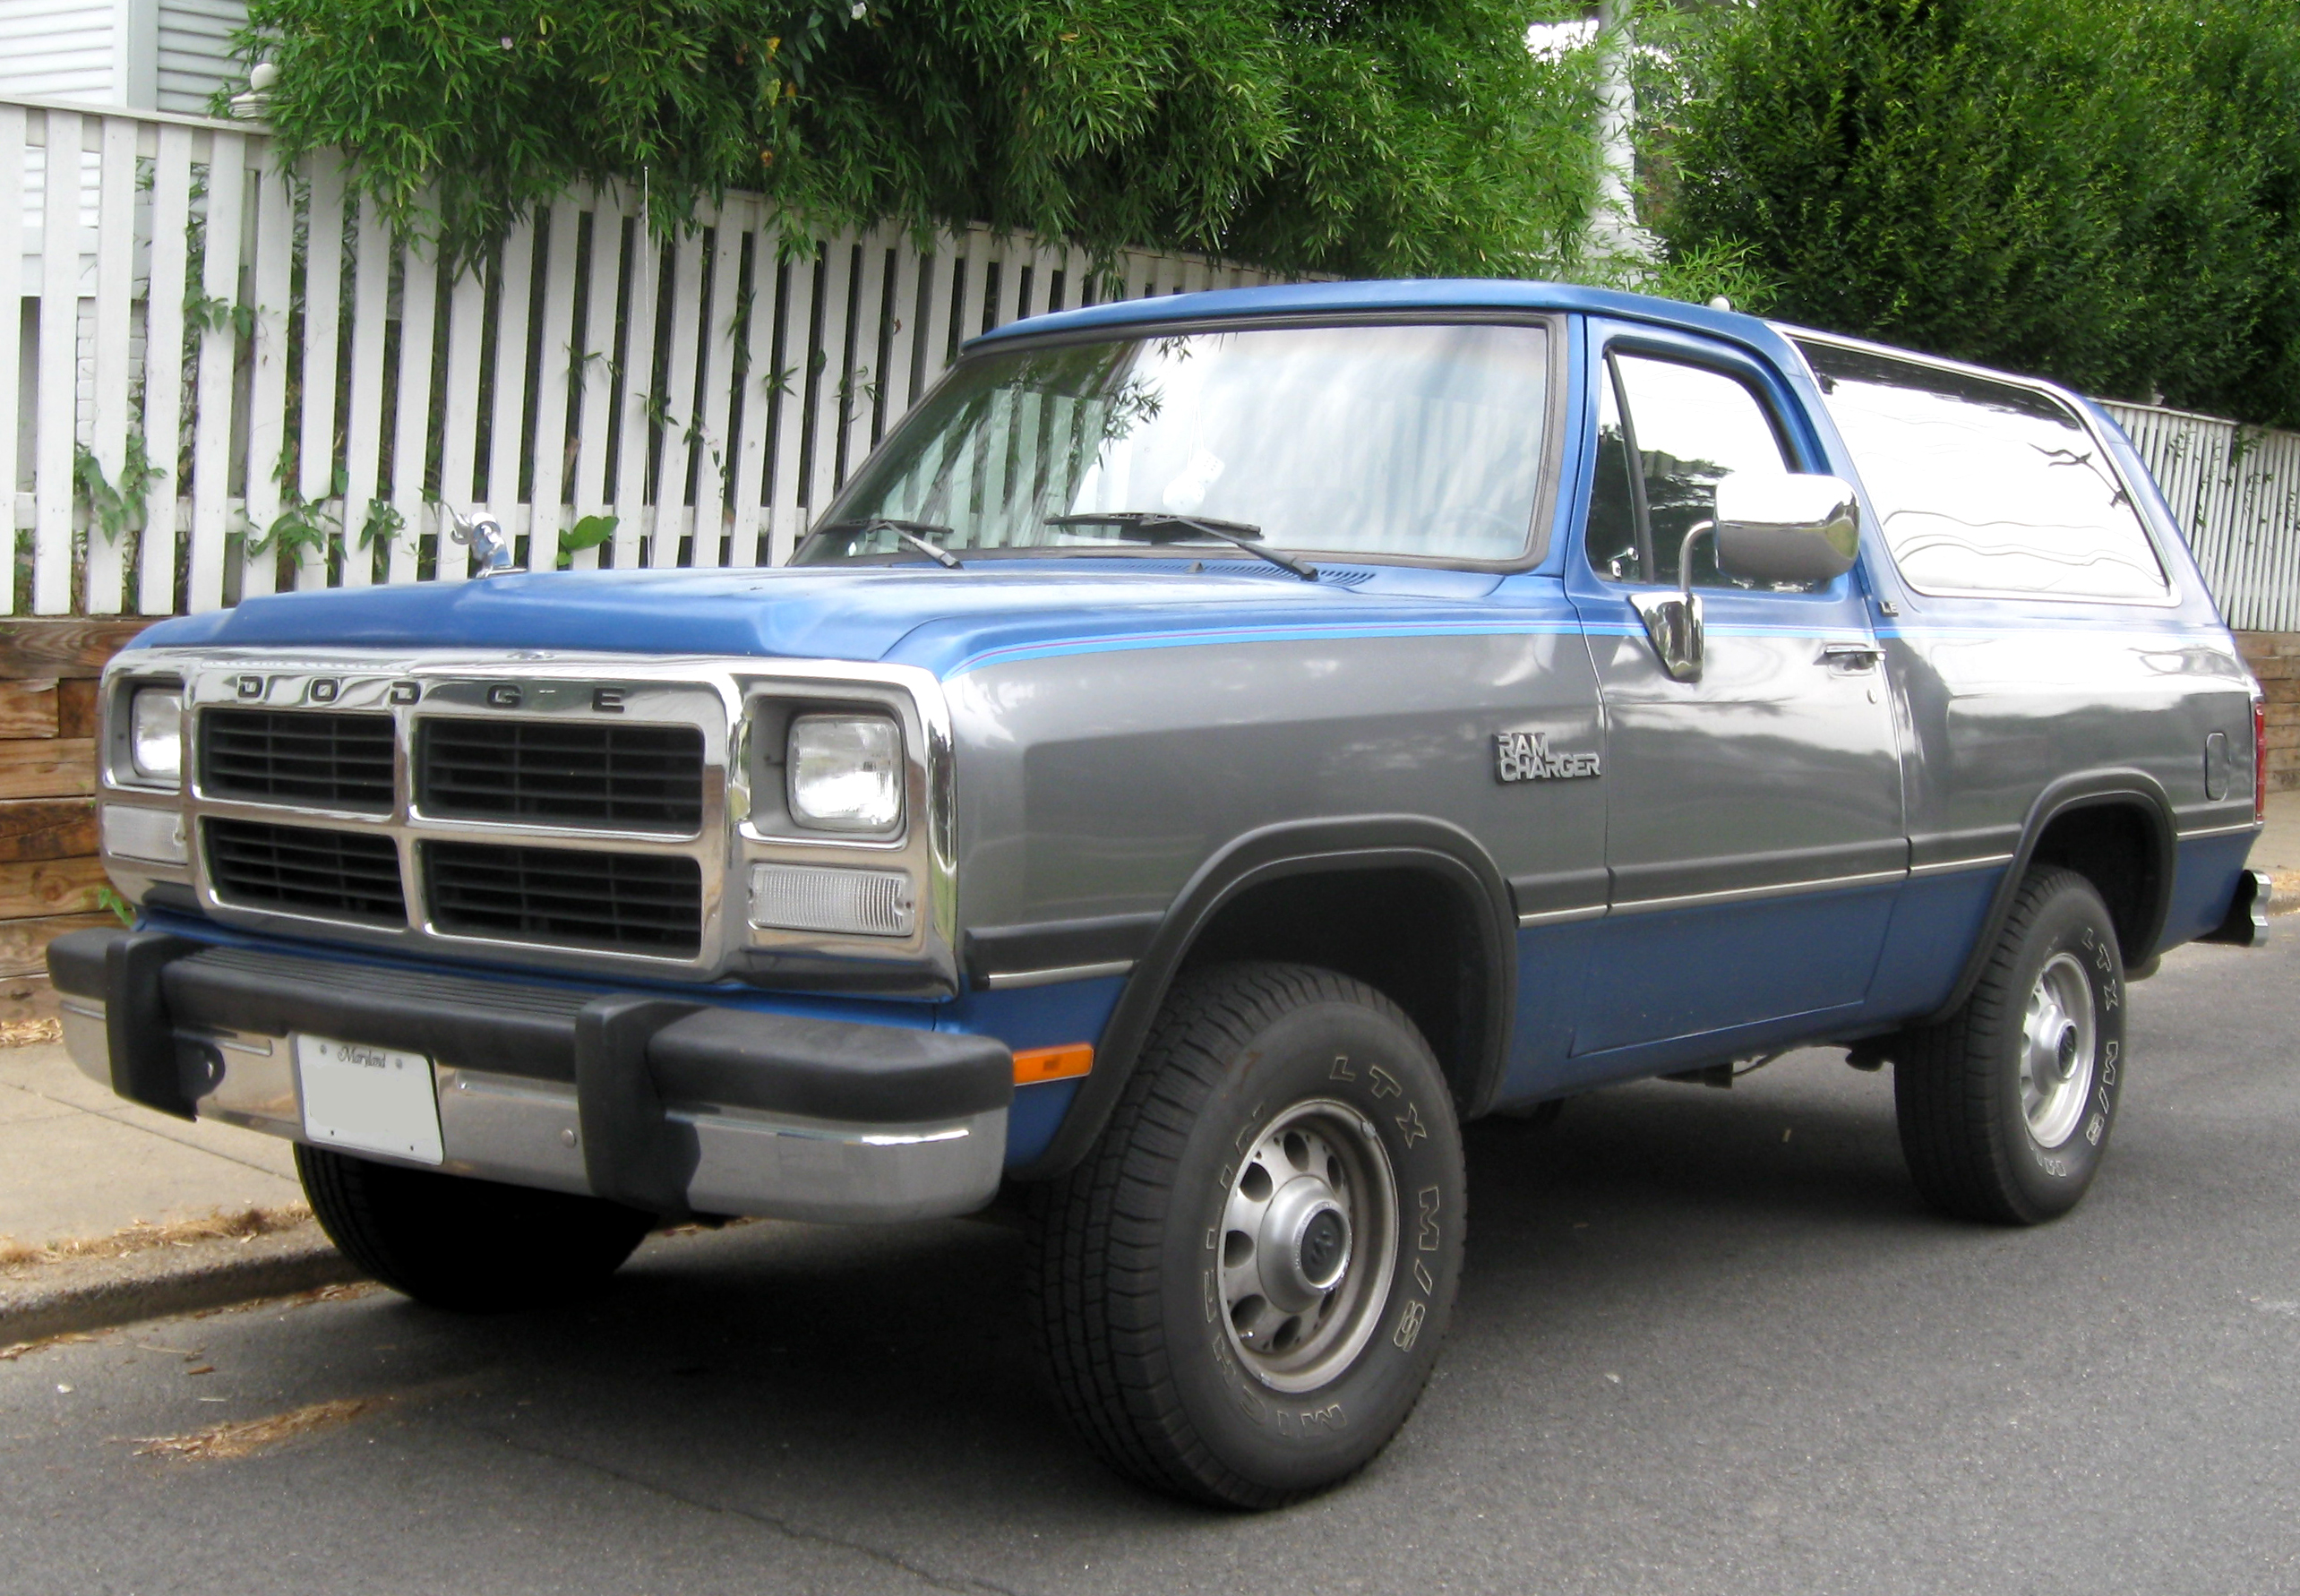 Dodge ramcharger photo - 3